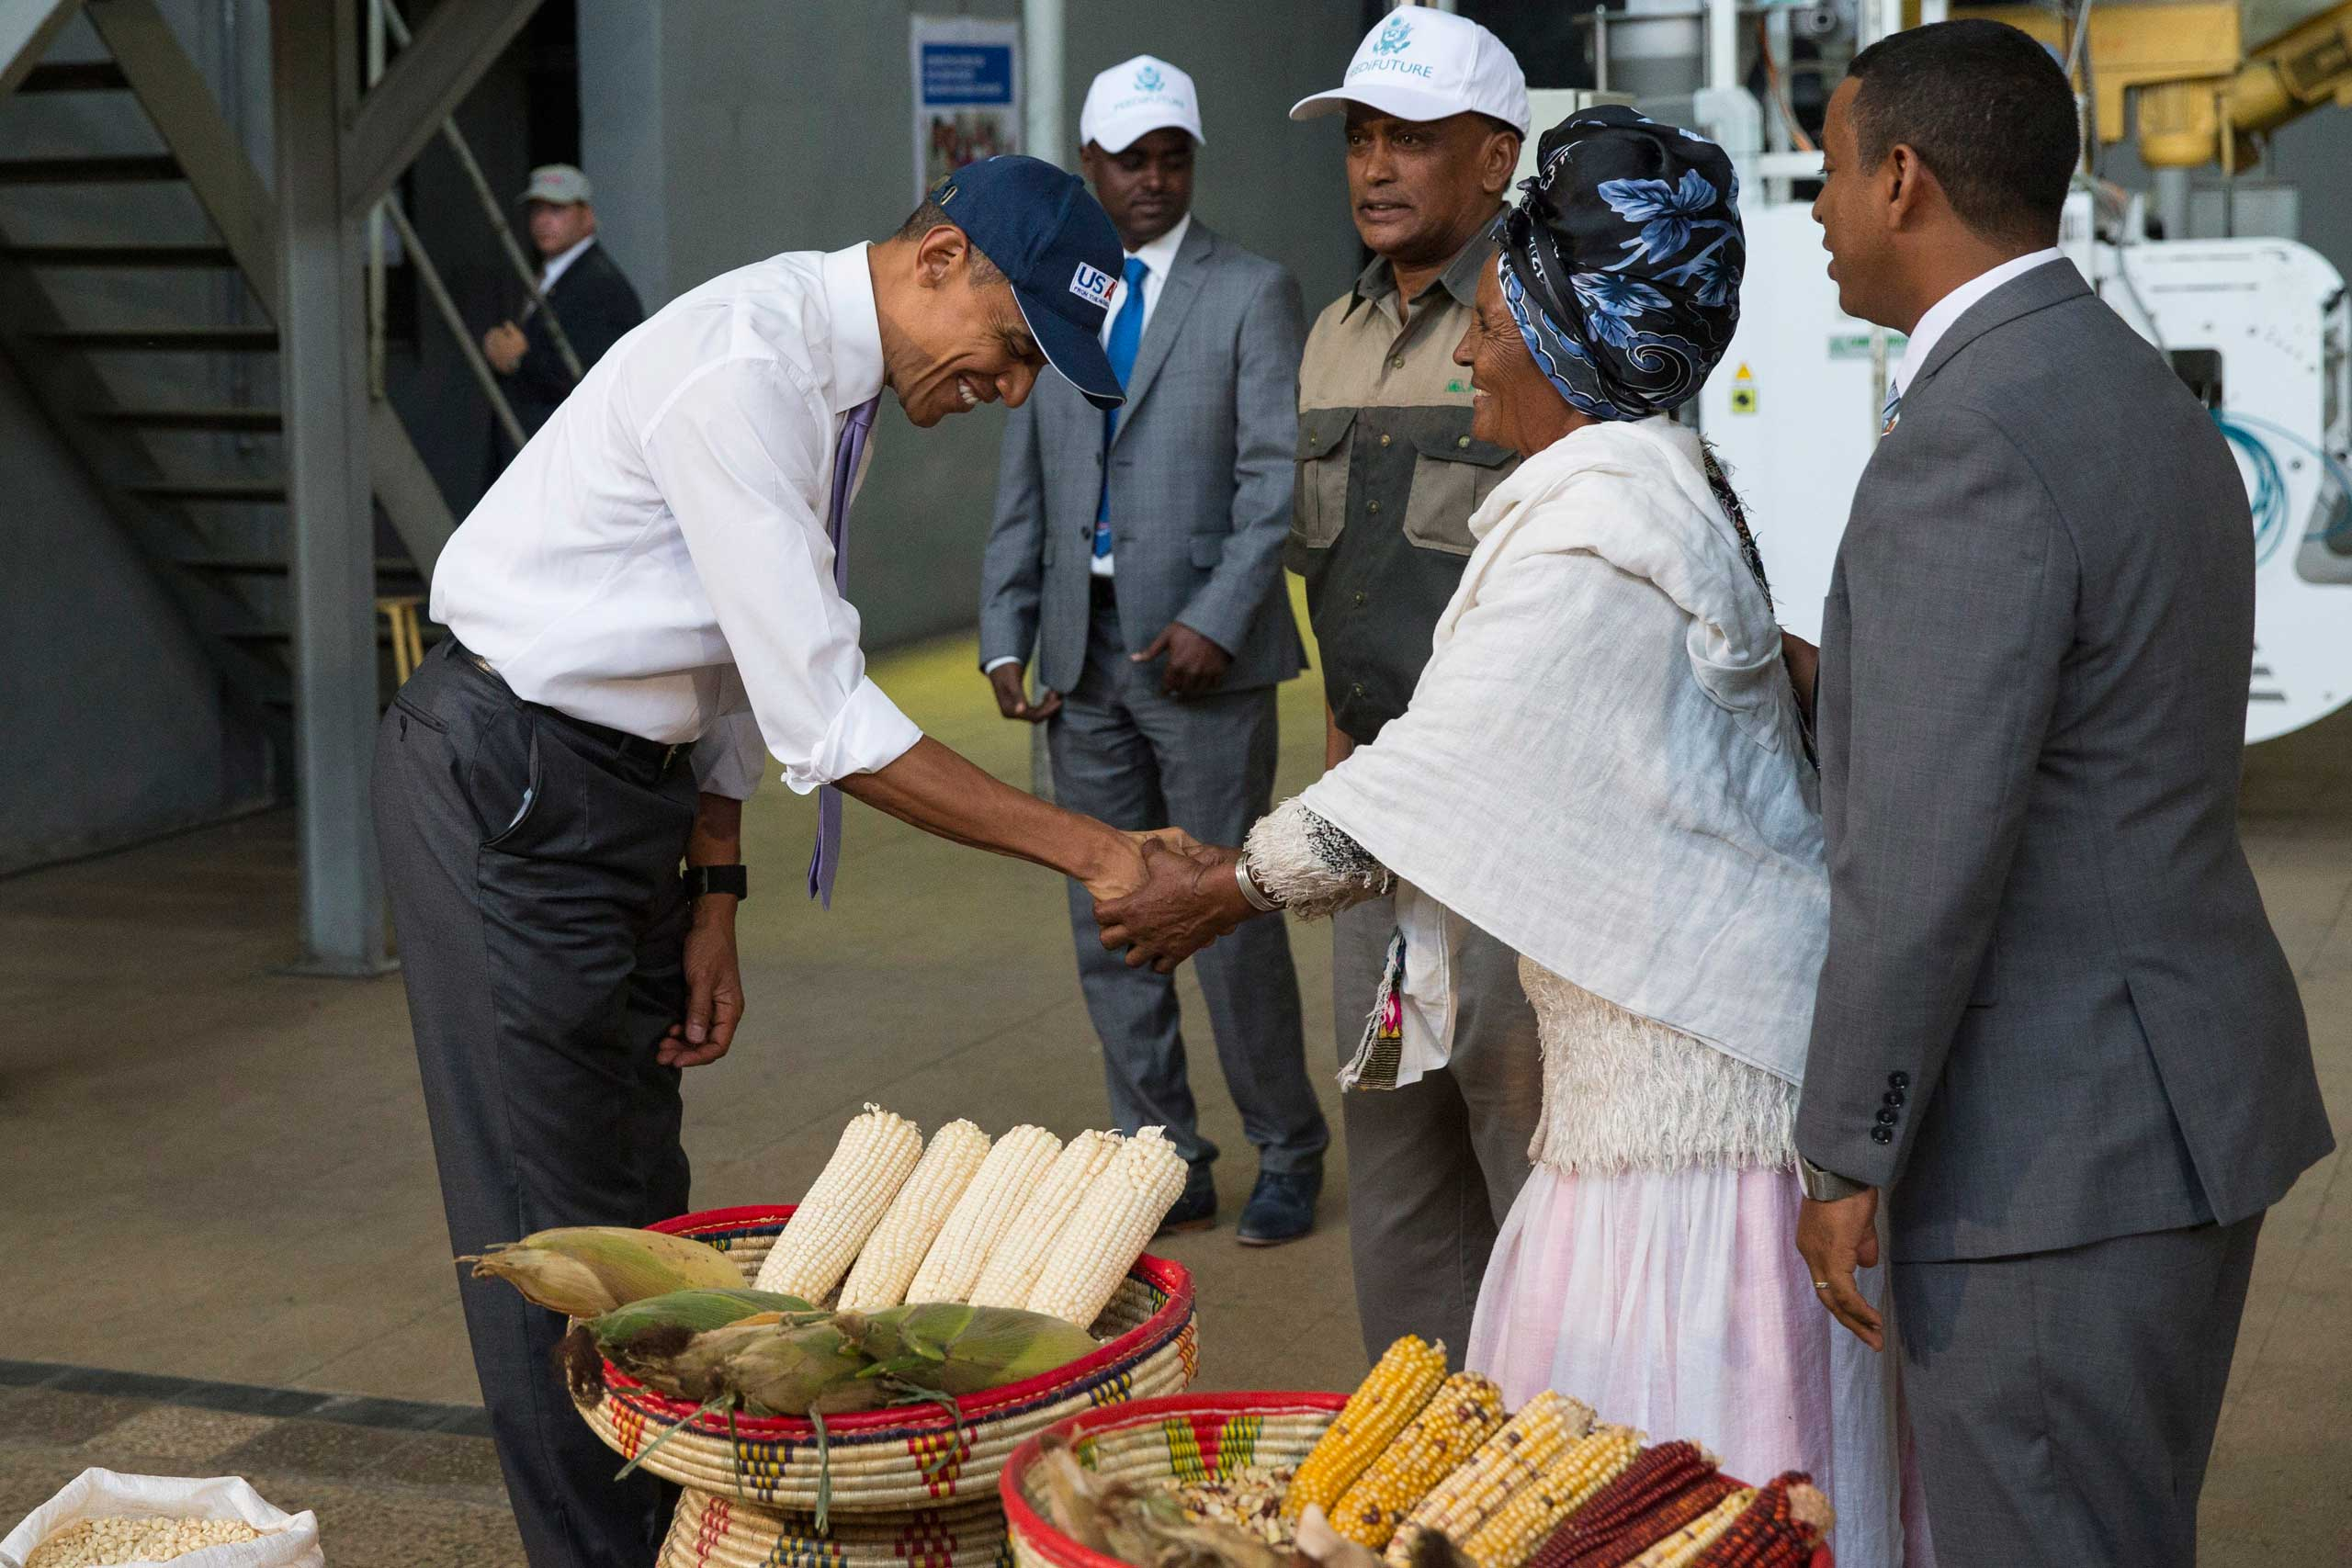 President Barack Obama shakes hands with farmer Gifty Jemal Hussein, after seeing her corn during a tour of Faffa Food in Addis Ababa on July 28, 2015.